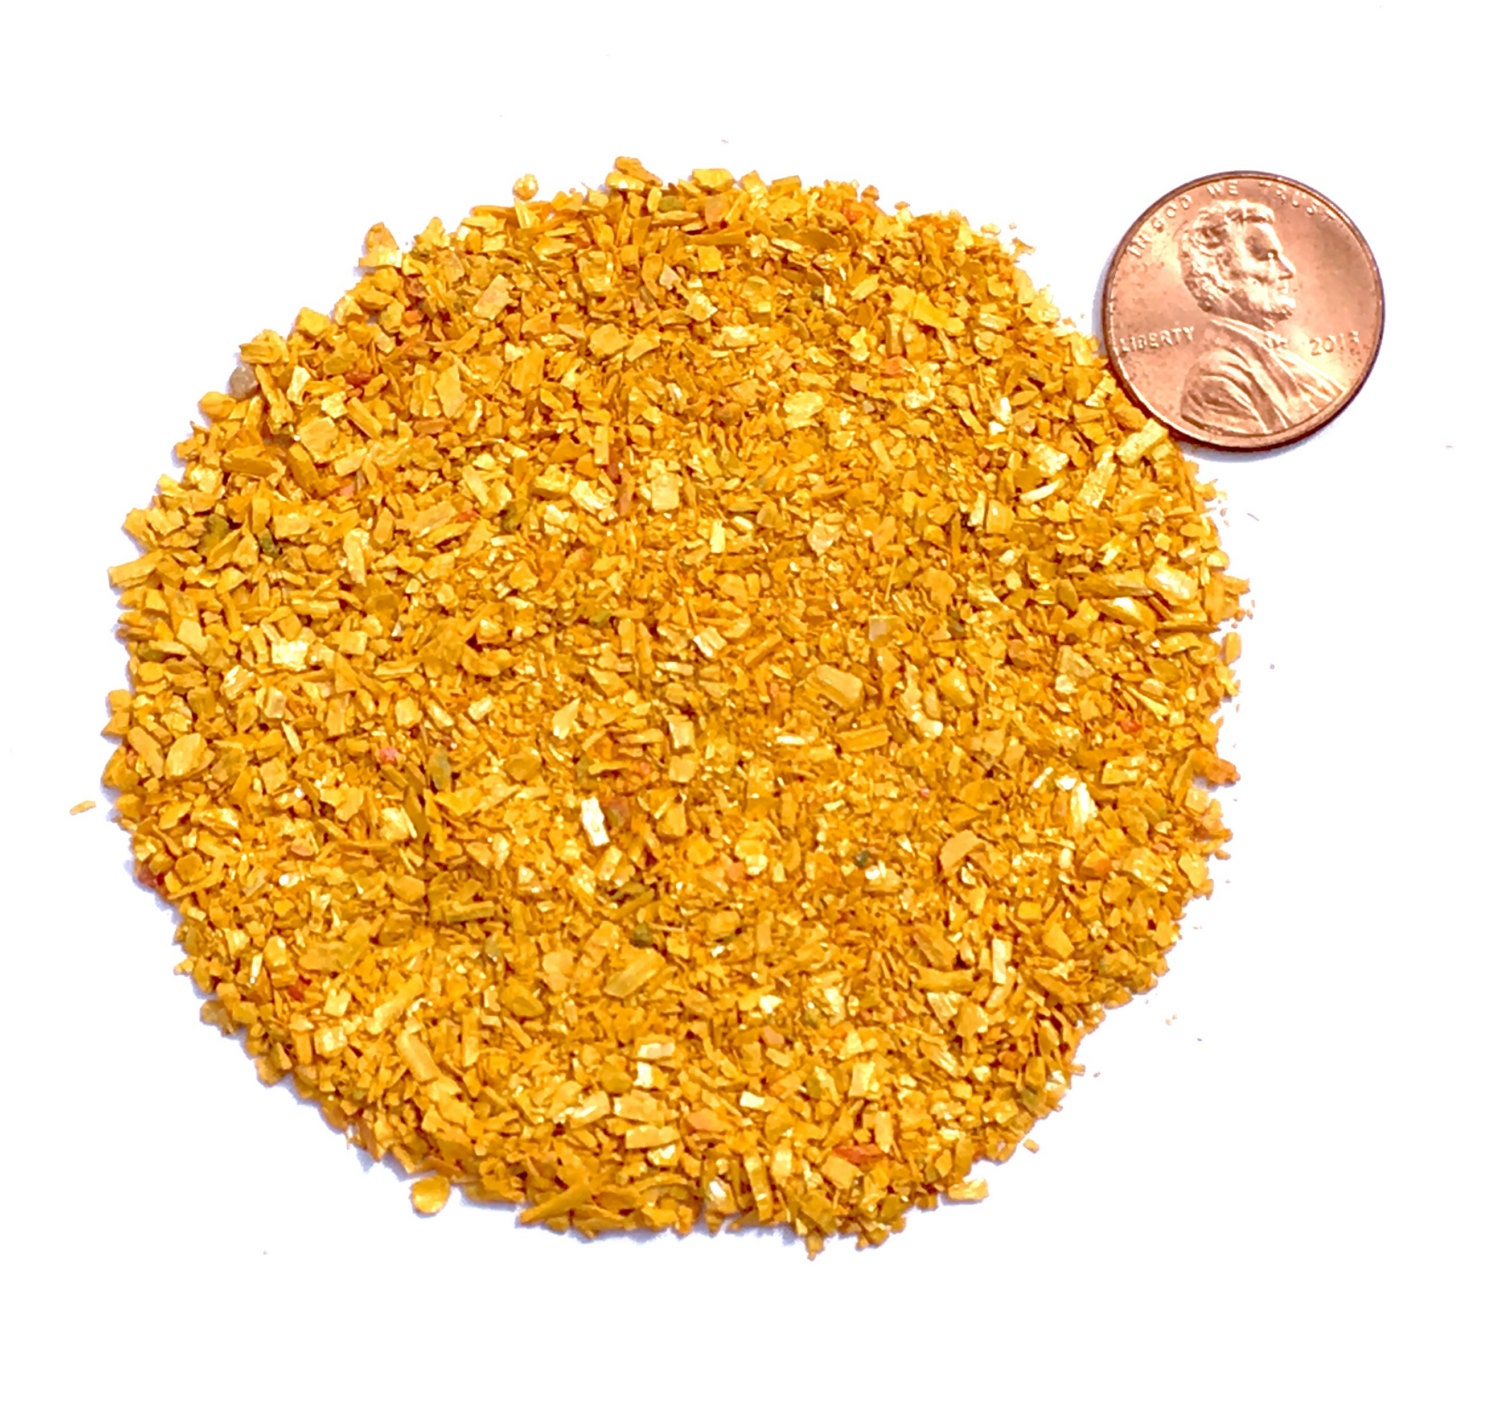 Crushed Gemstone For Inlays : Crushed orpiment stone inlay medium ounce